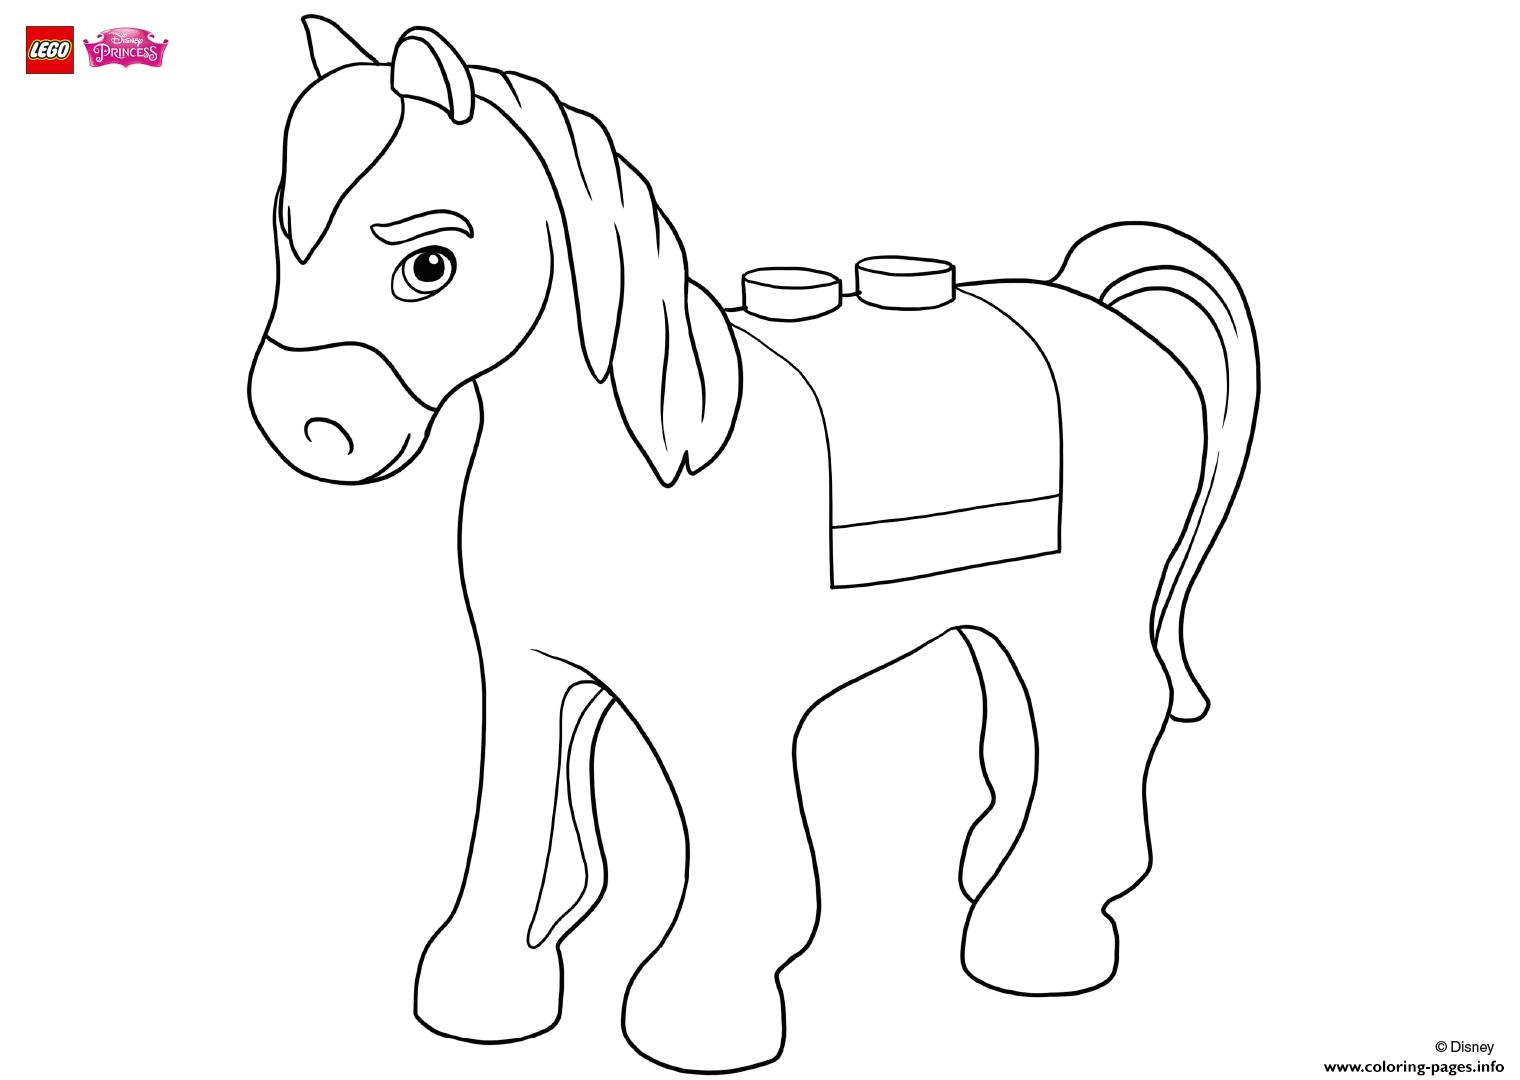 Help Make Maximus Look Good Lego Disney coloring pages